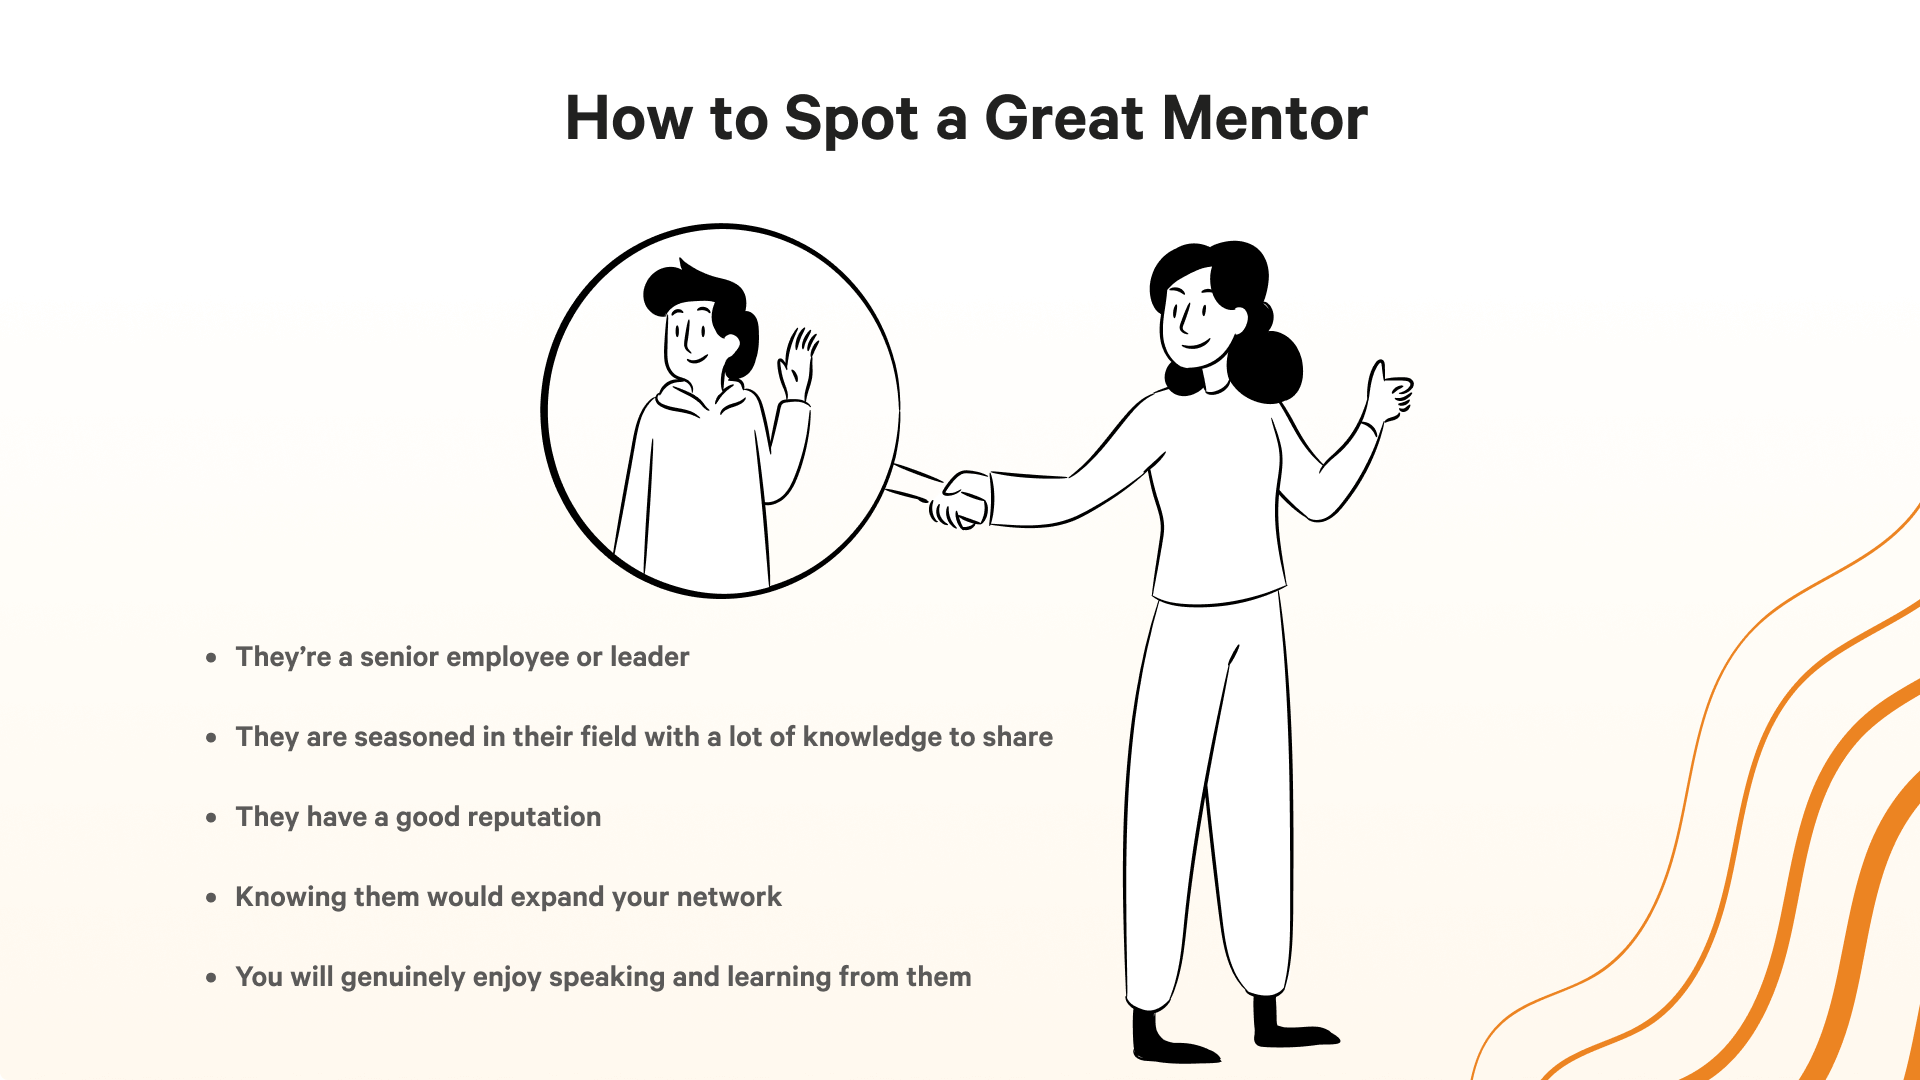 Here's how mentees can spot a great mentor.